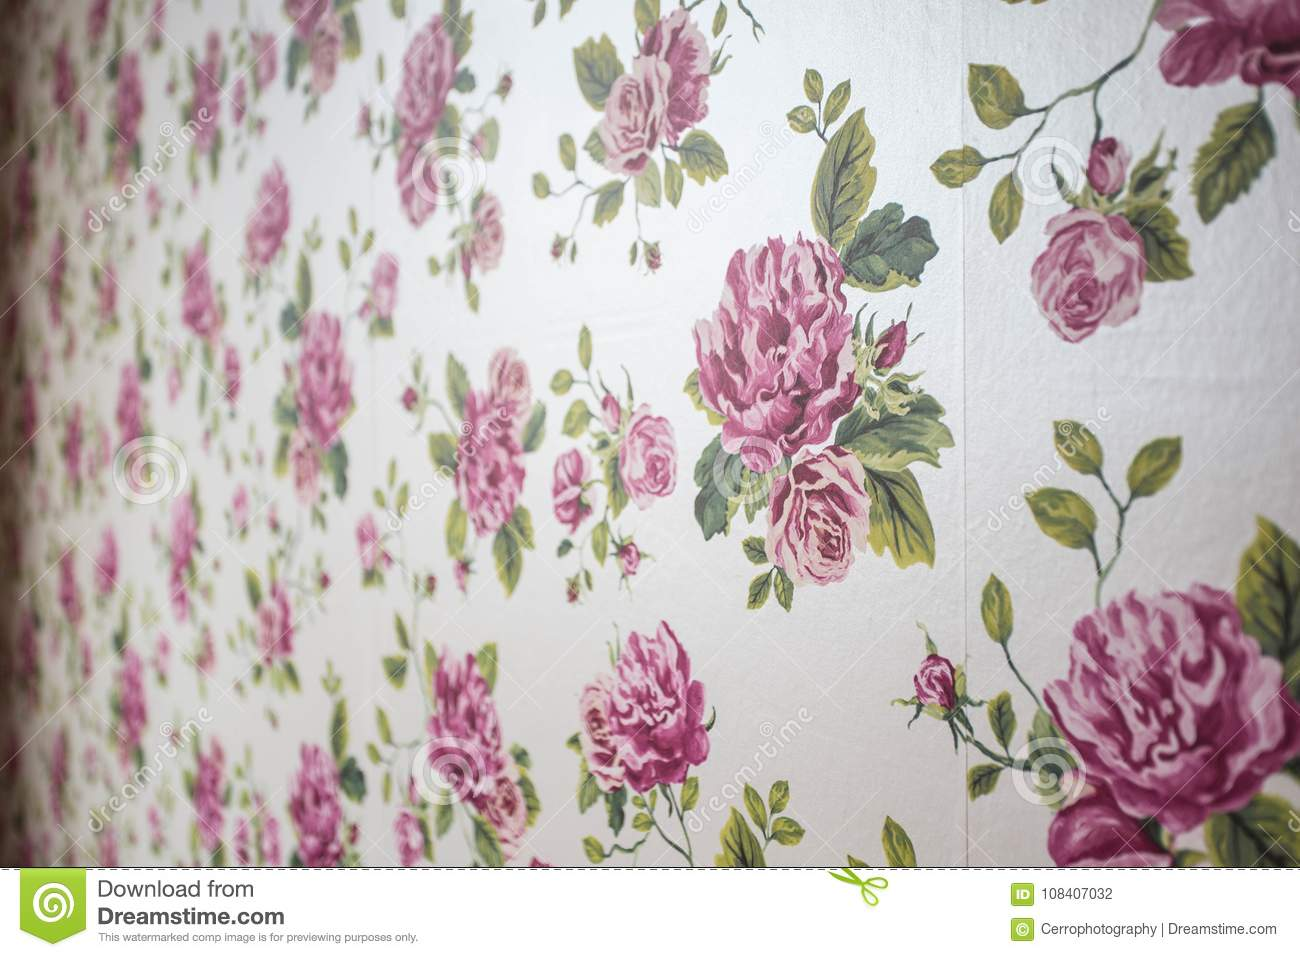 Pink Flowers Background Texture Wallpaper Soft Designgirly Stock